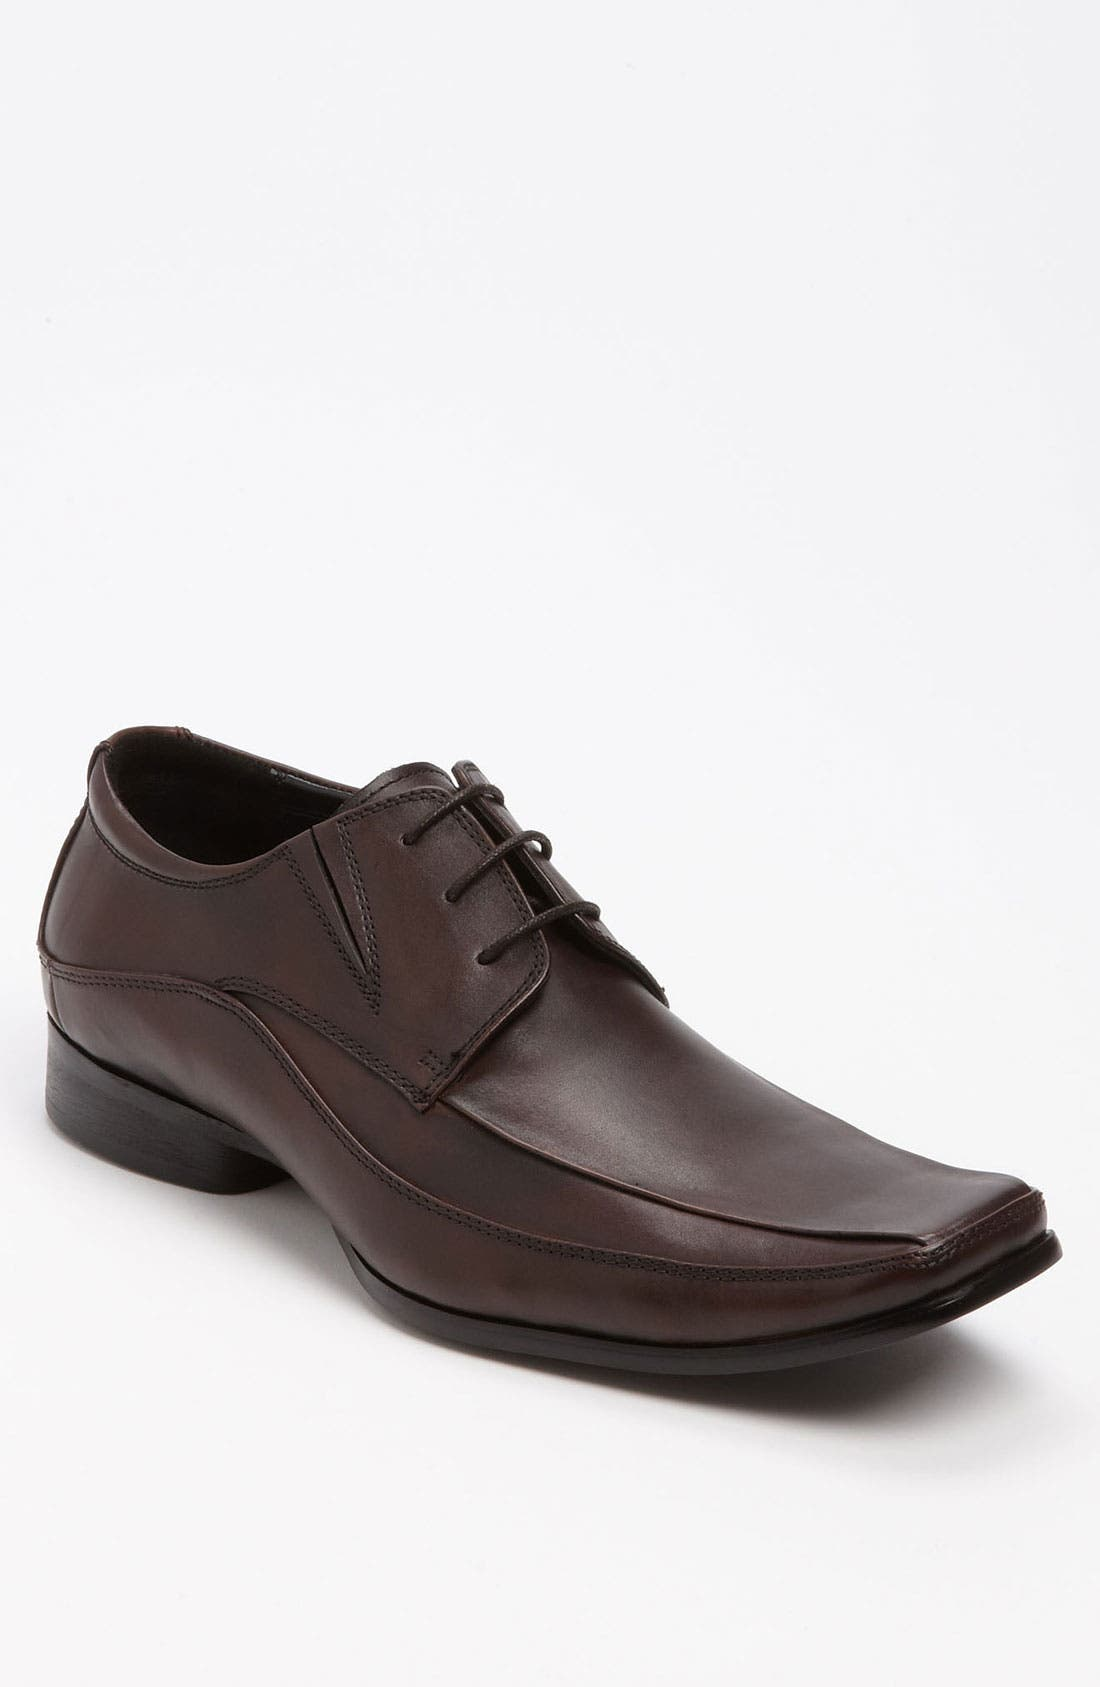 Main Image - Kenneth Cole Reaction 'Field Note' Derby